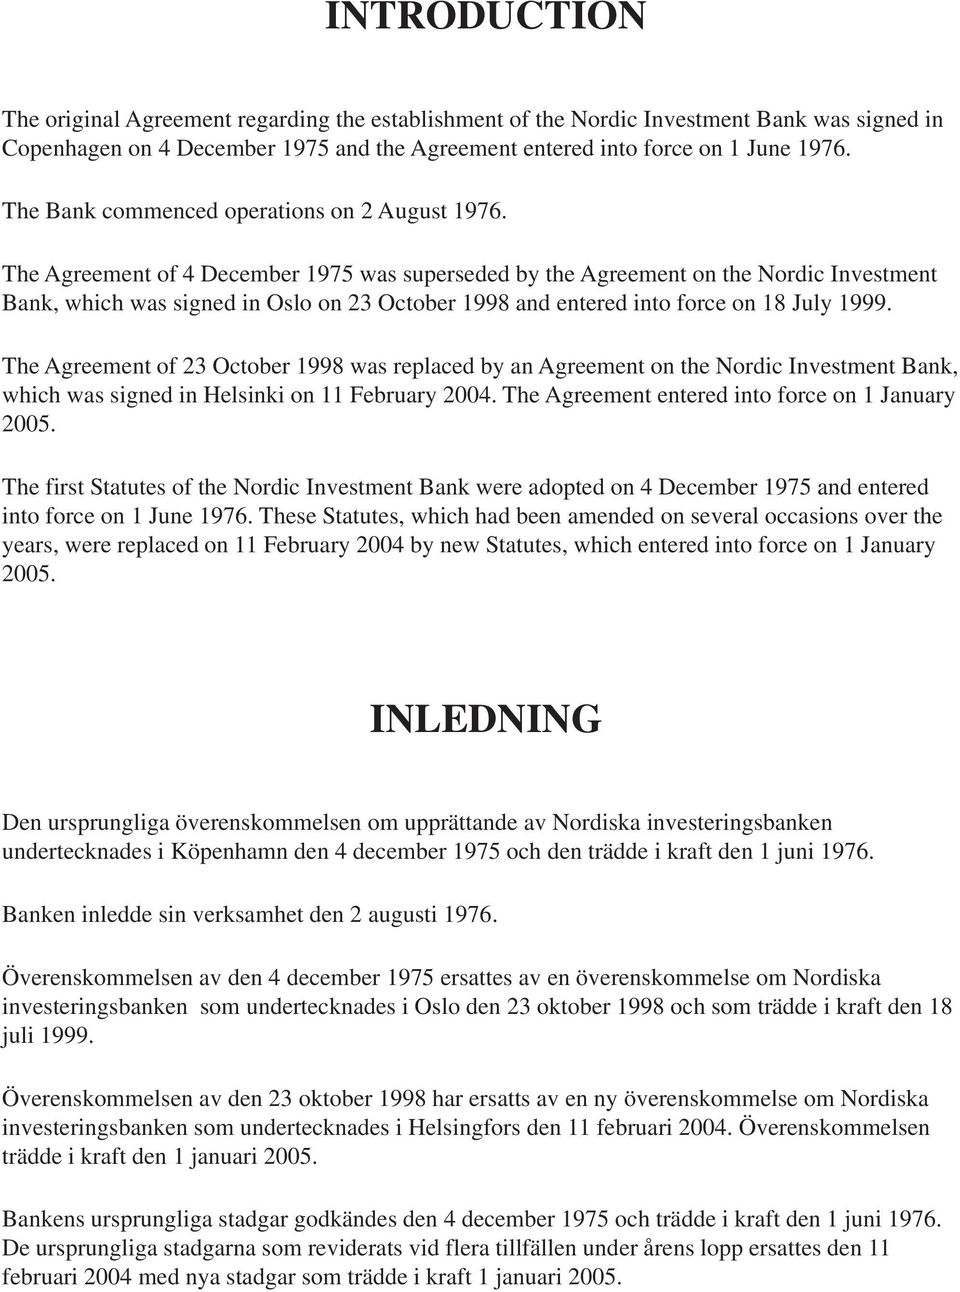 The Agreement of 4 December 1975 was superseded by the Agreement on the Nordic Investment Bank, which was signed in Oslo on 23 October 1998 and entered into force on 18 July 1999.